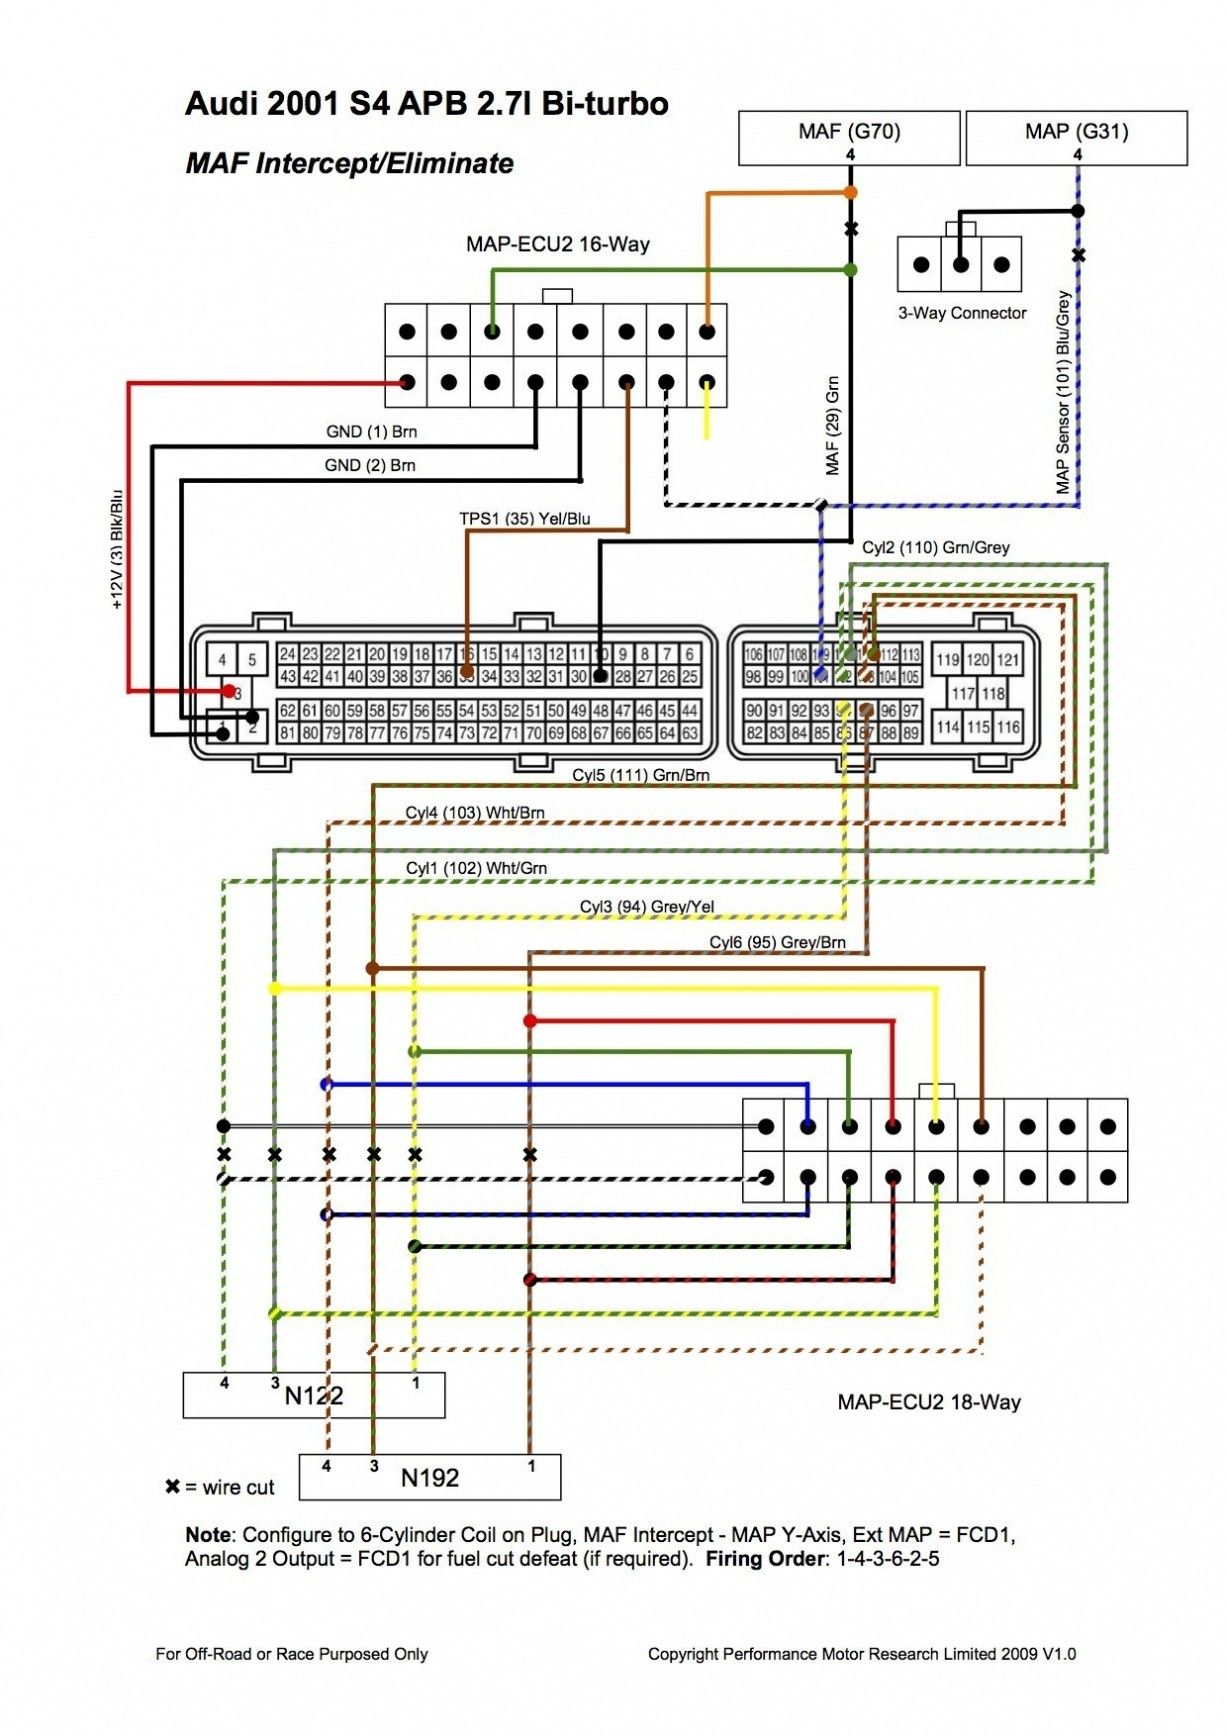 wiring diagram for audi a4 towbar diagram diagramtemplateaudi trailer wiring diagram 10 [ 1226 x 1736 Pixel ]